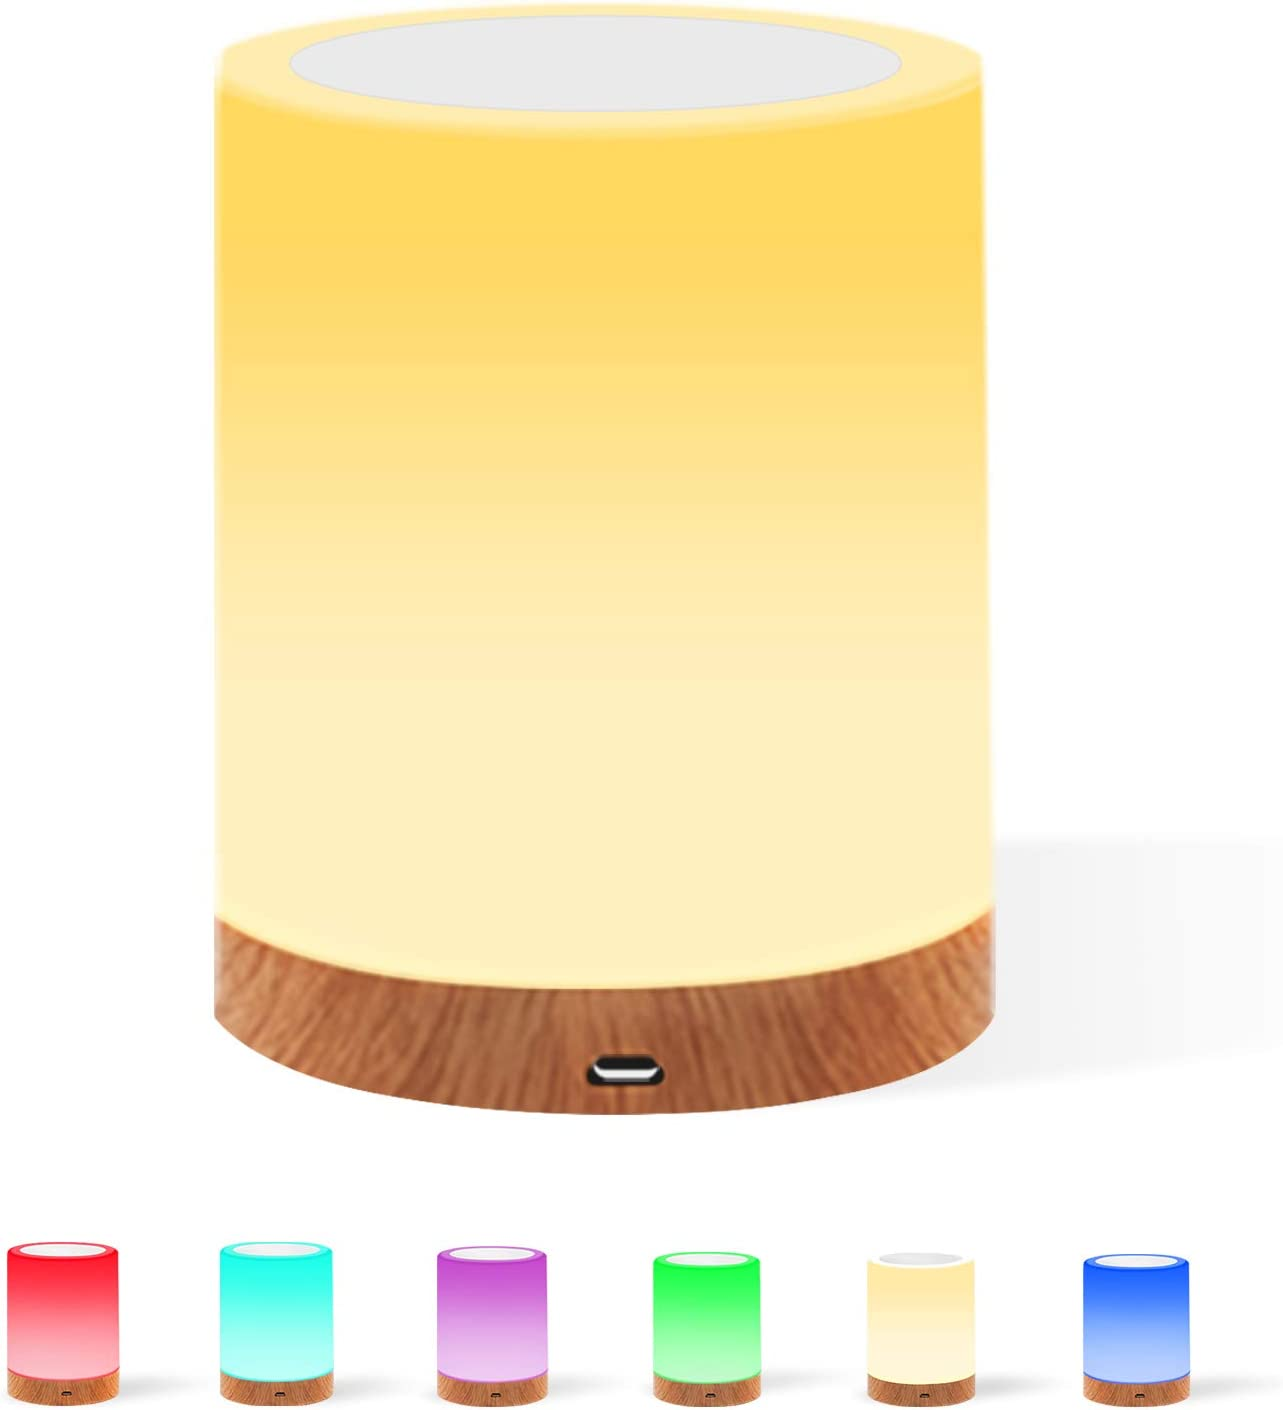 USB Powered Always On//60 Minute Time-Out Feature Lights By Night Color-Changing Table Top Lamp Nightlight Flowers and Butterflies Pink Acrylic Base Colorful 9 Multi-Colored 3D Options 32917